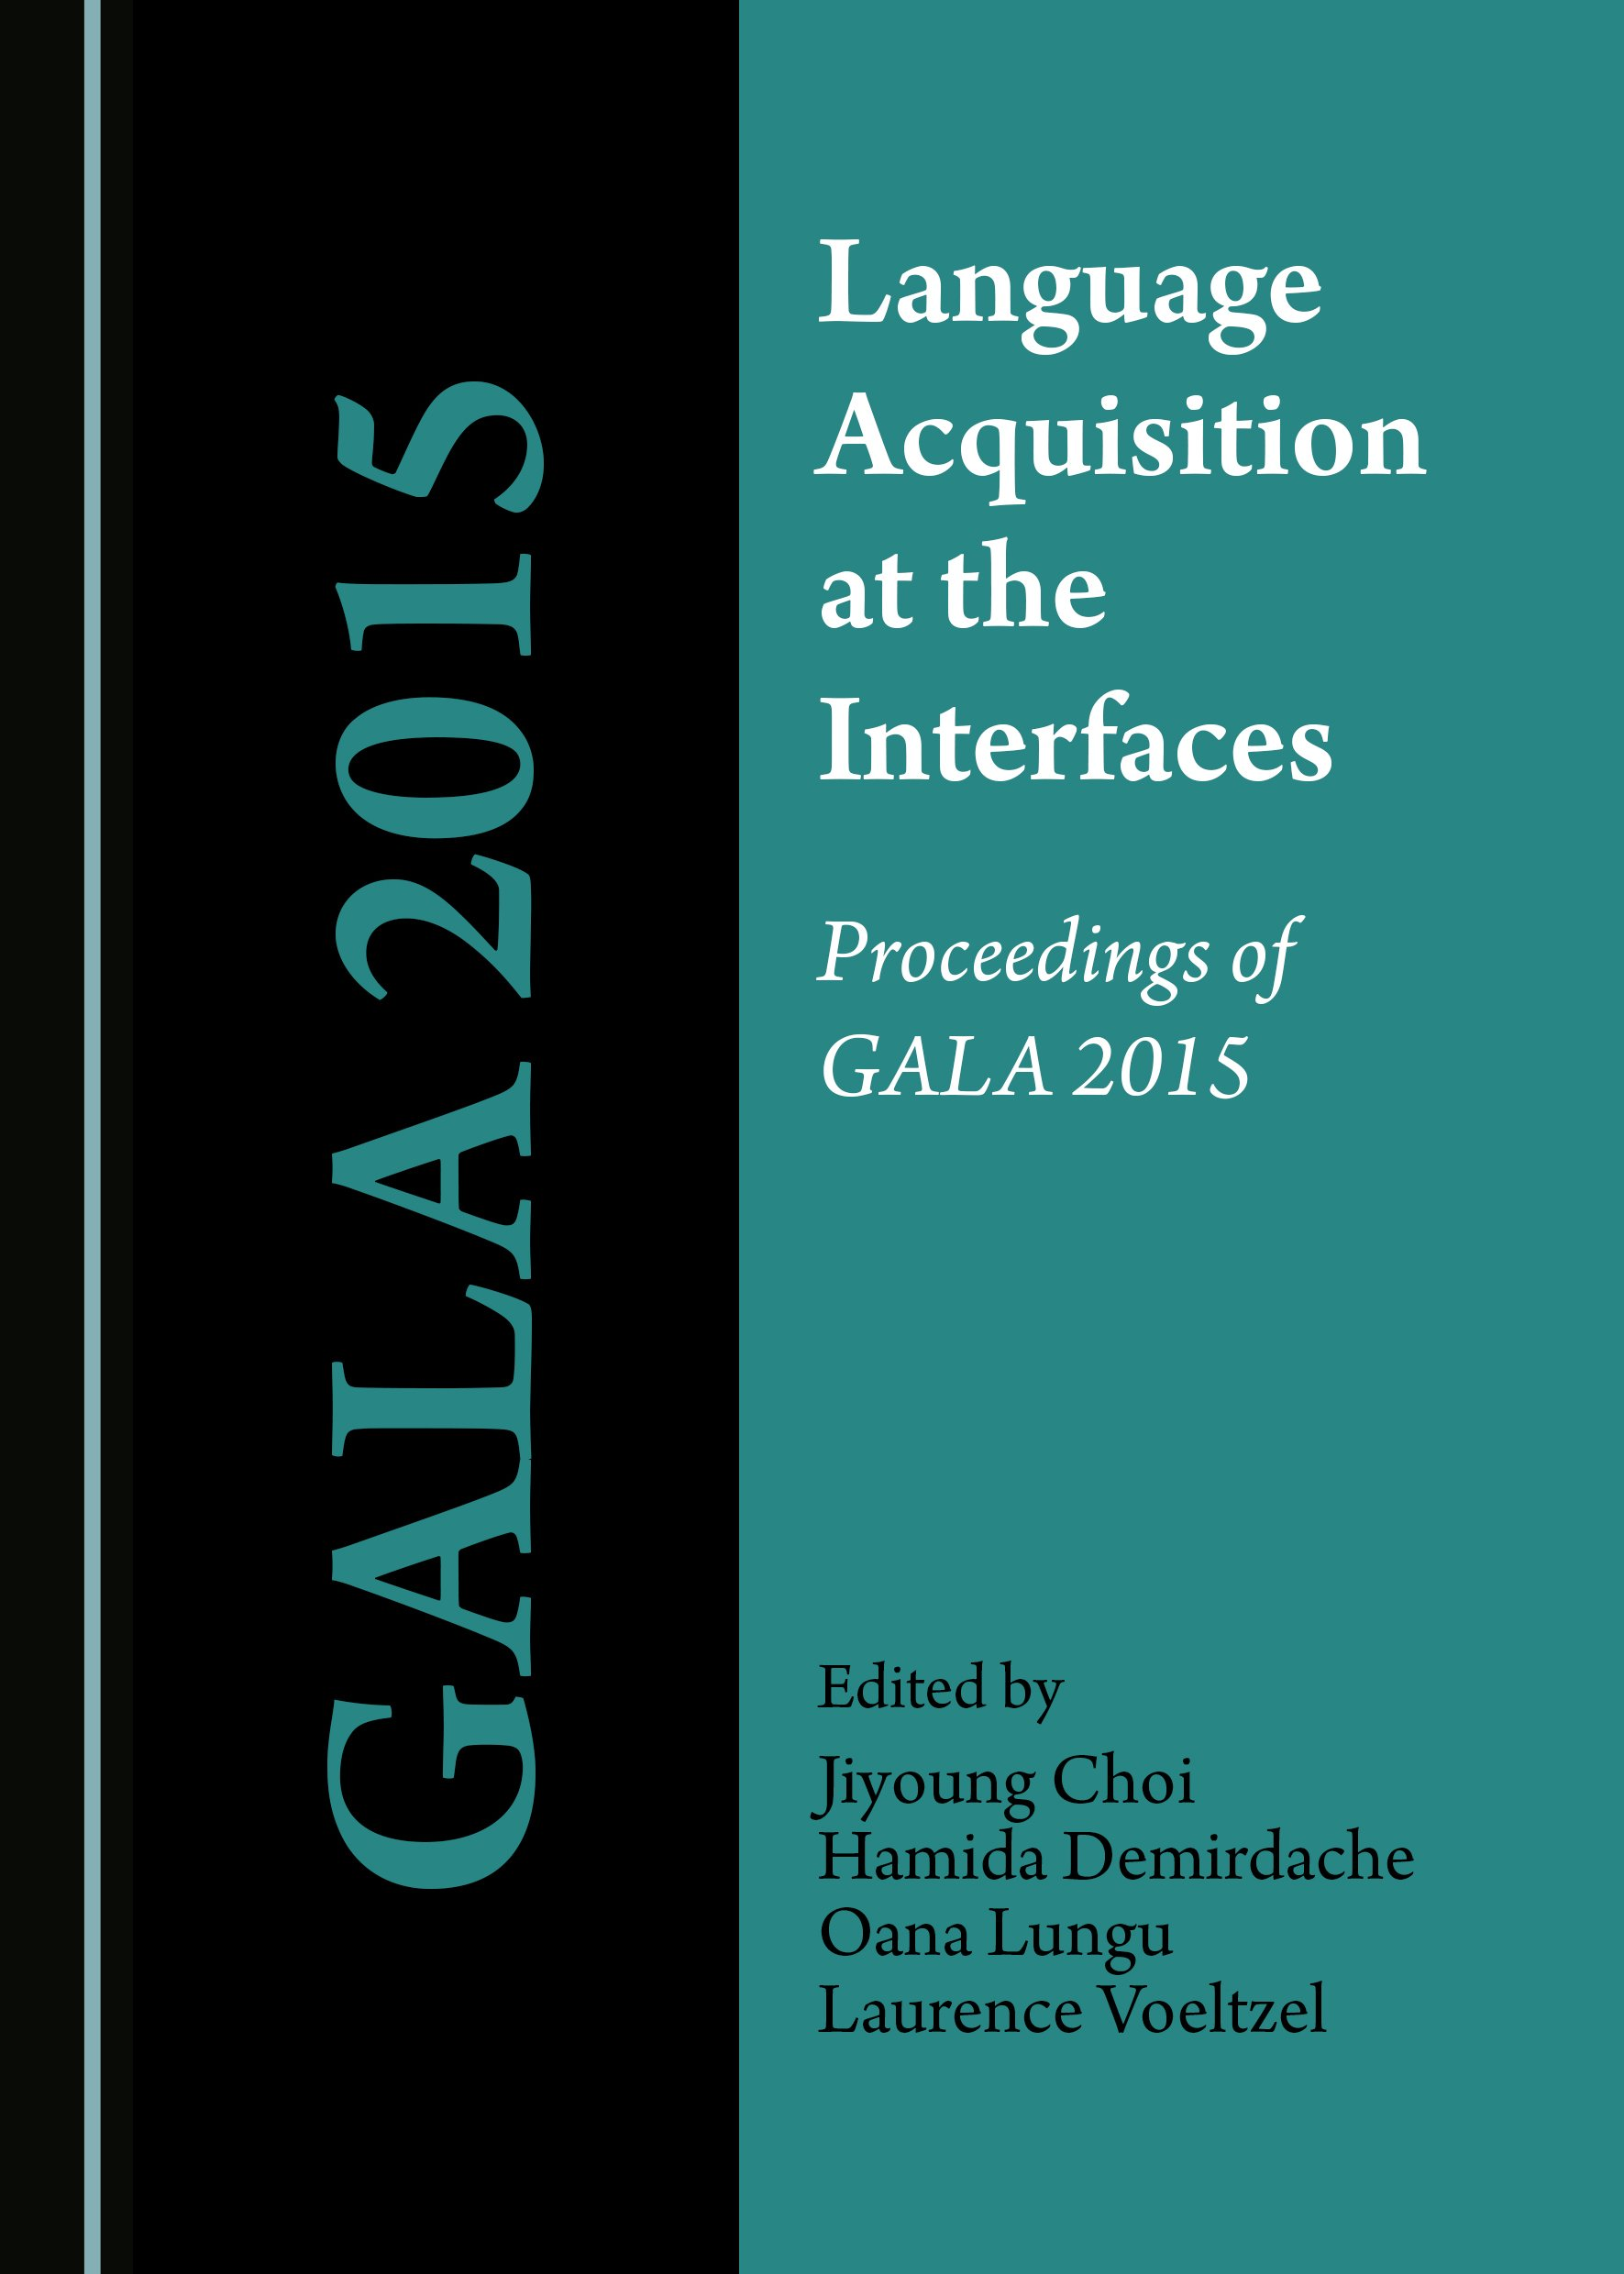 Language Acquisition at the Interfaces: Proceedings of GALA 2015